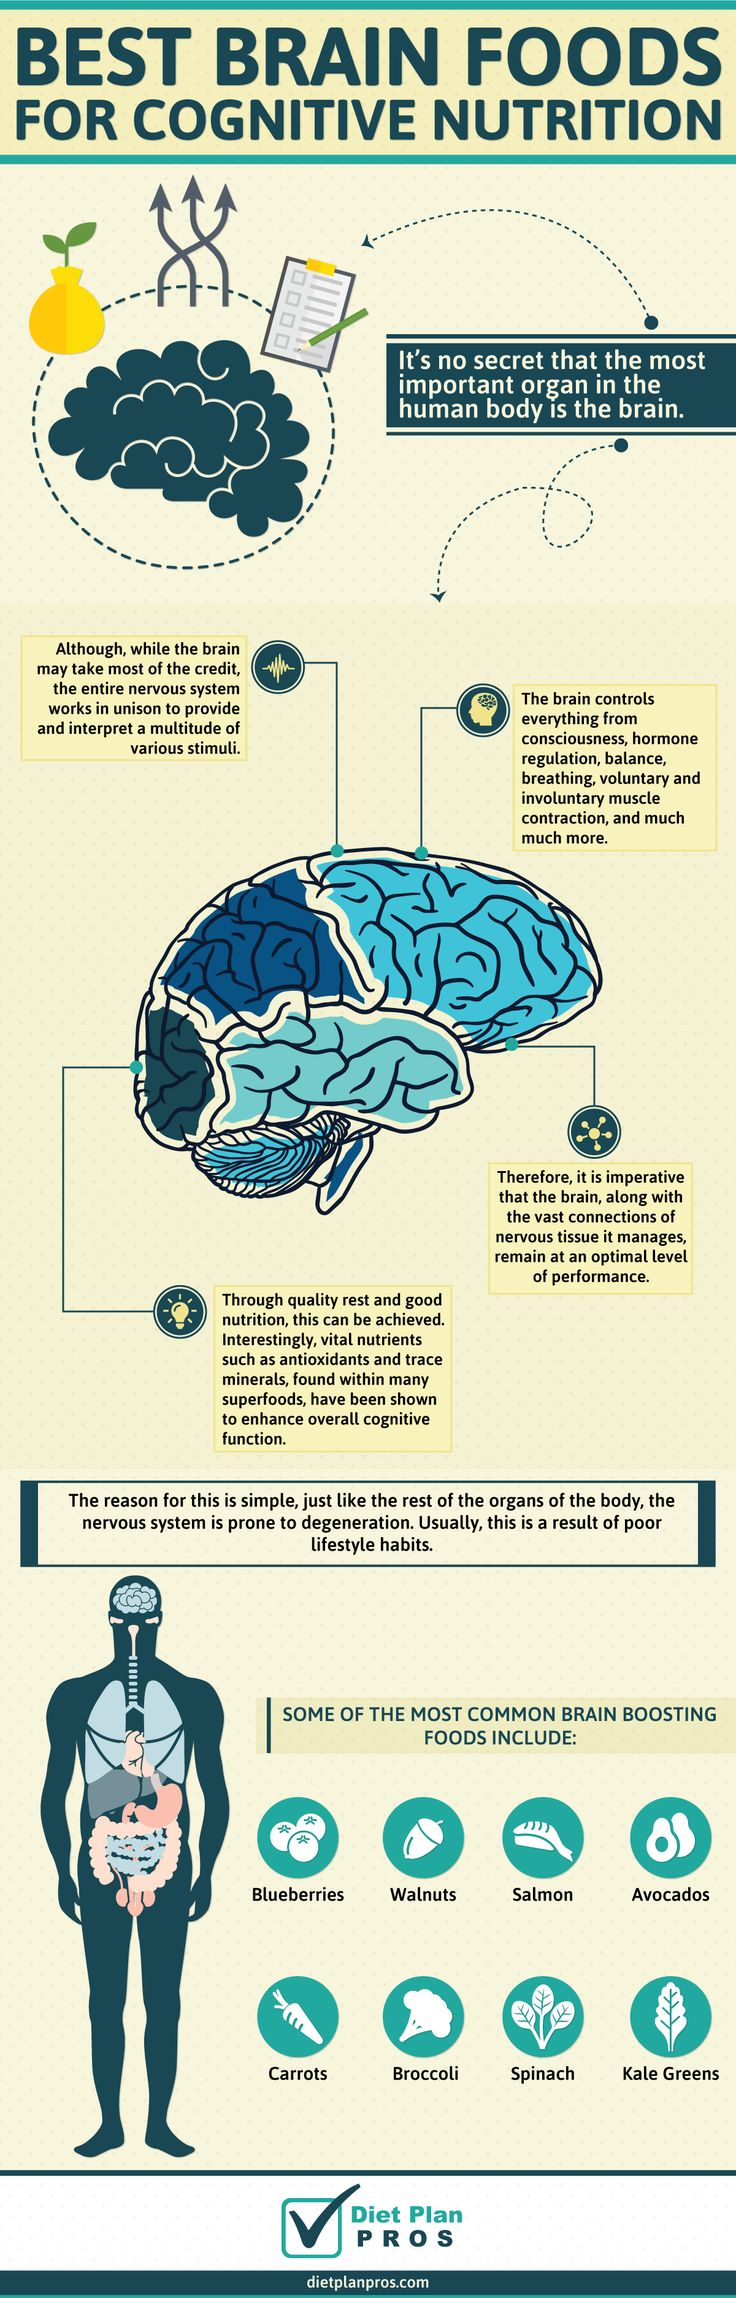 Best Brain Foods for Cognitive Nutrition: It's no secret that the most important organ in the human body is the brain. Although, while the brain may take most of the credit, the entire nervous system works in unison to provide and interpret a multitude of various stimuli. The brain controls everything from consciousness, hormone regulation, balance, breathing, voluntary and involuntary muscle contraction, and much much more.